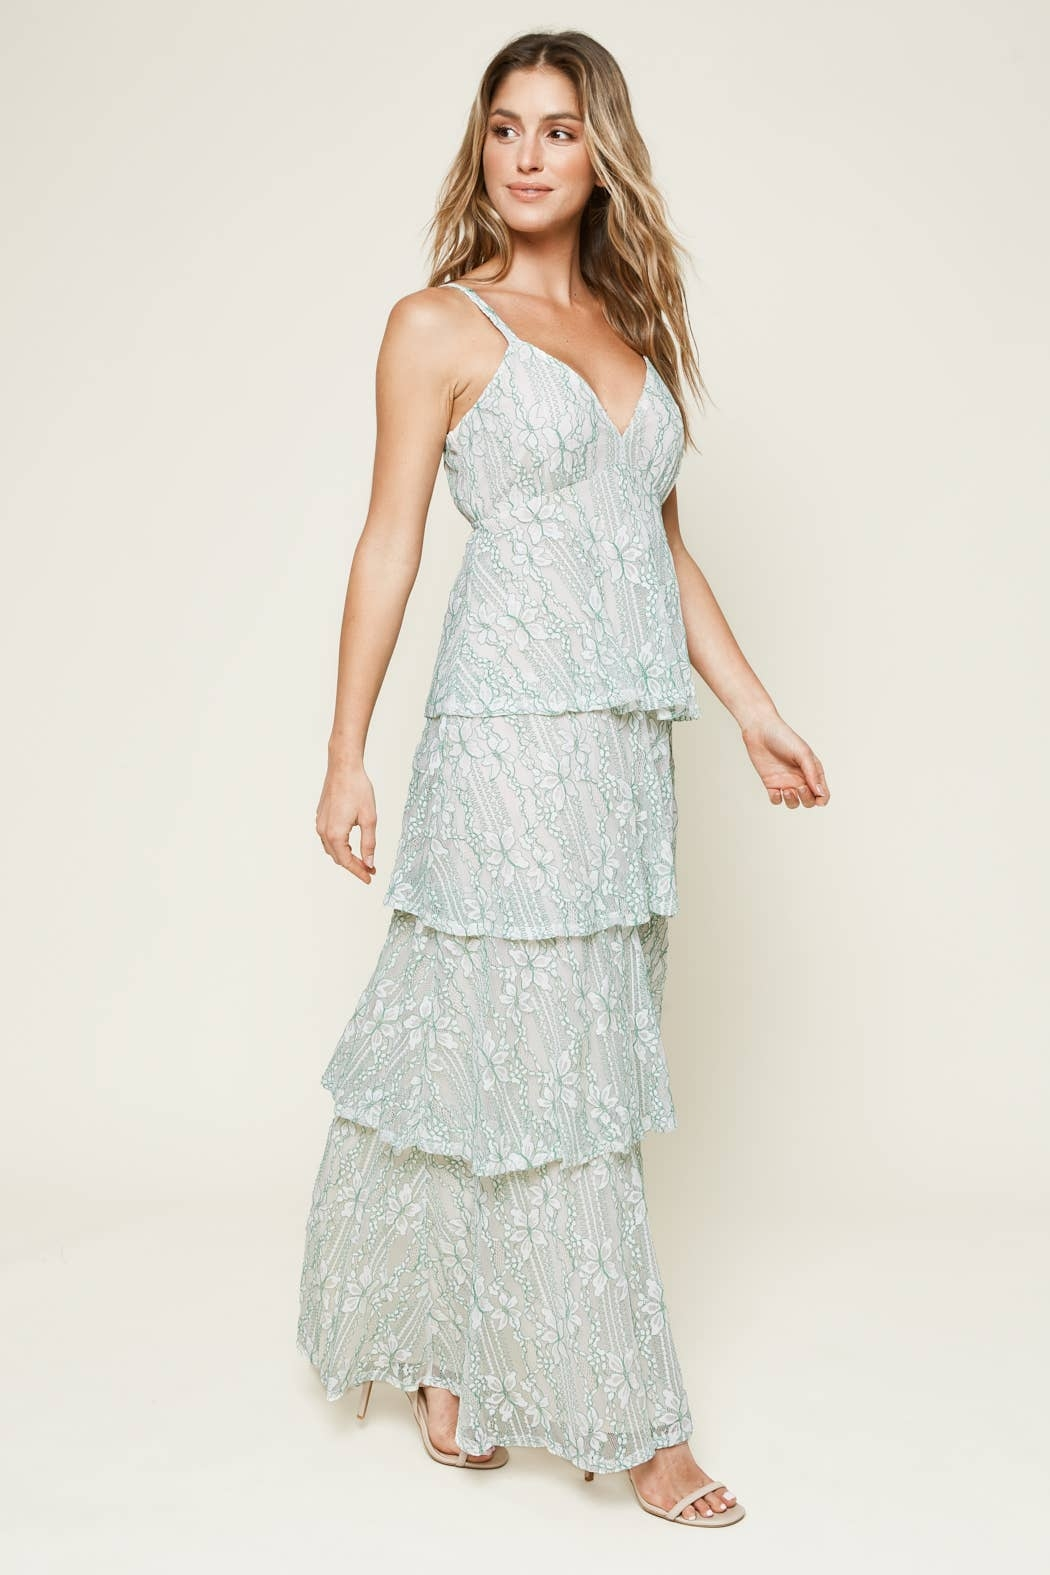 Sugarlips Good Life Tiered Lace Maxi Dress - Front Full Image